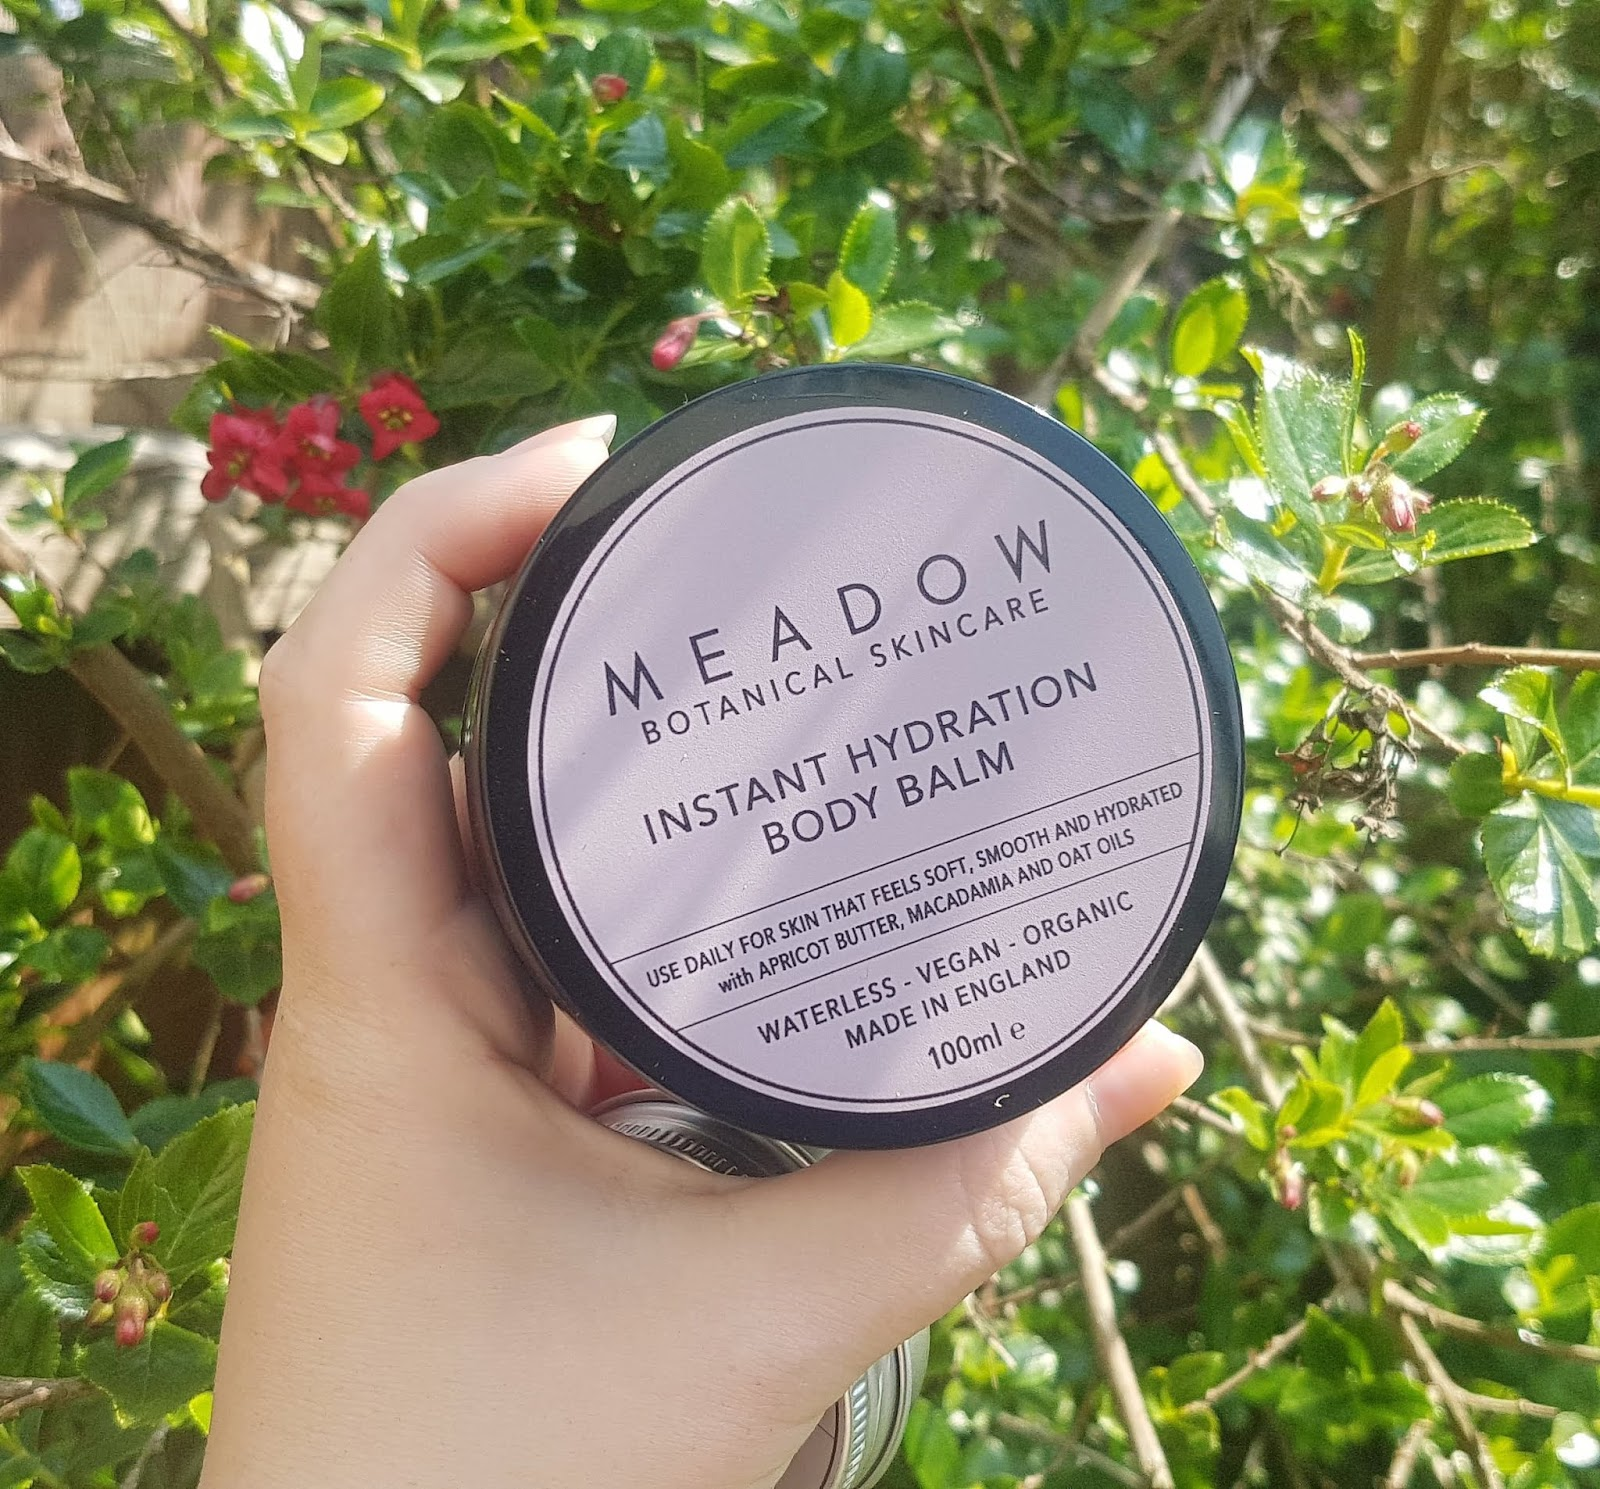 Meadow Skincare Instant Hydration Body Balm Review